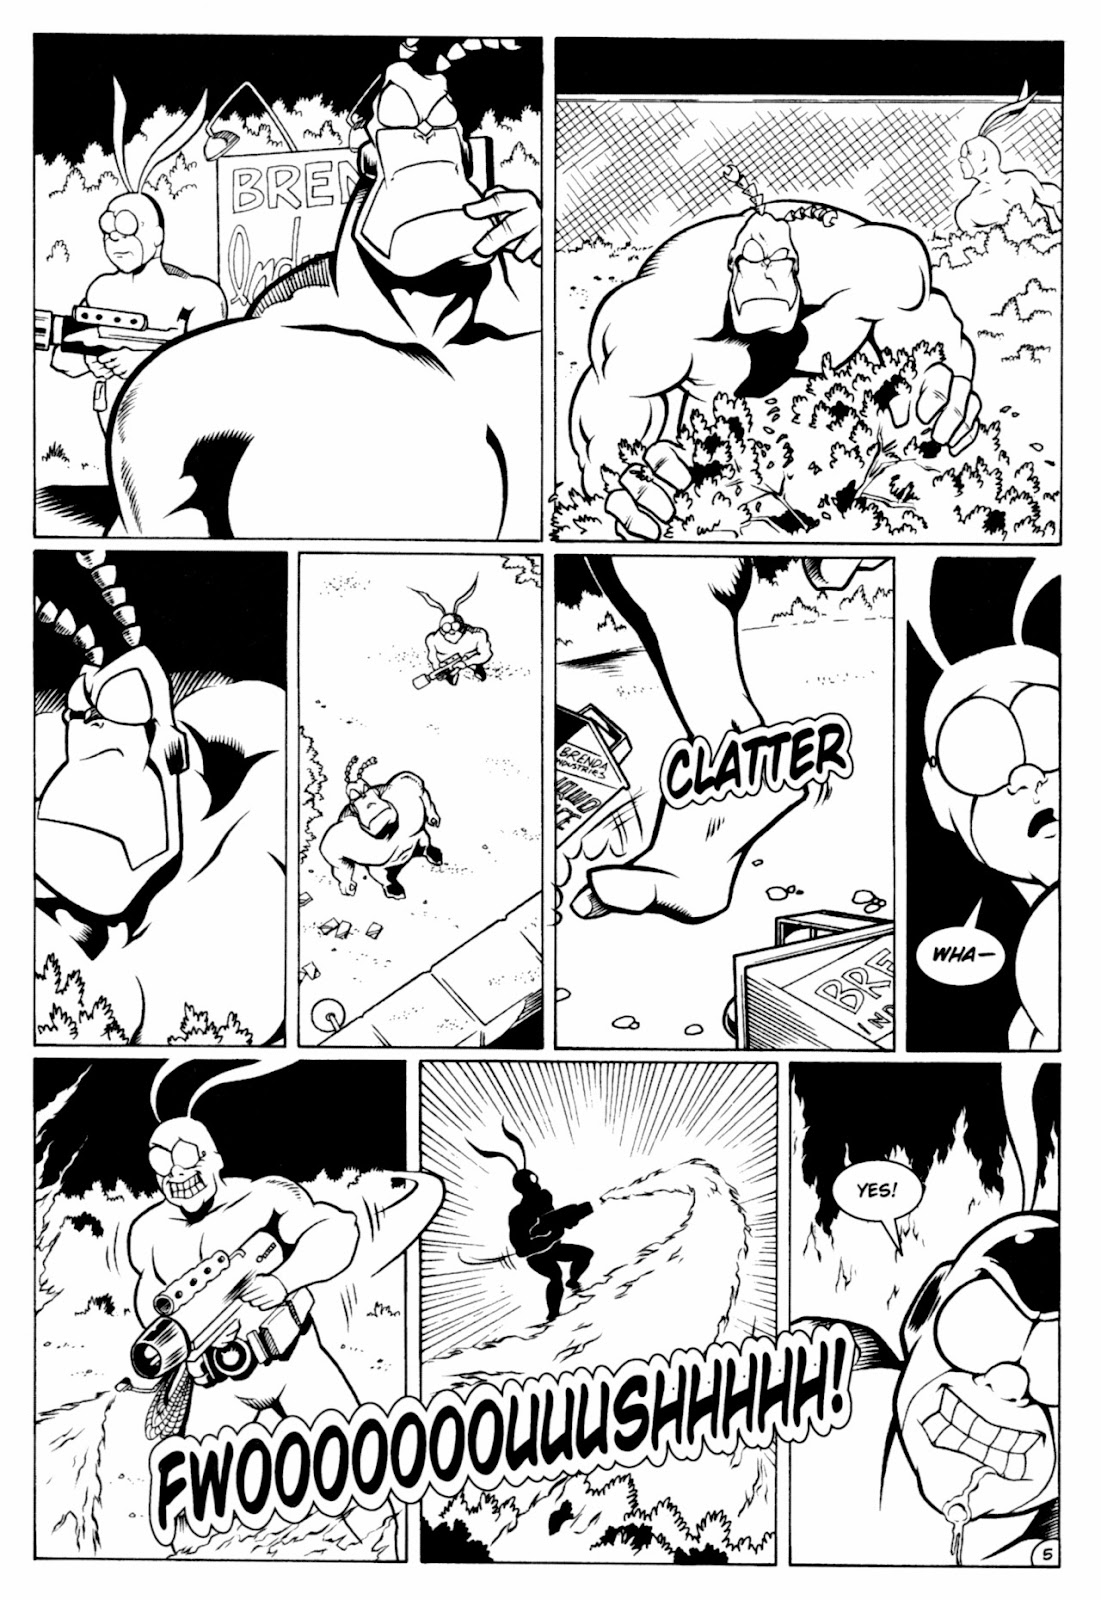 Read online The Tick comic -  Issue #13 - 7